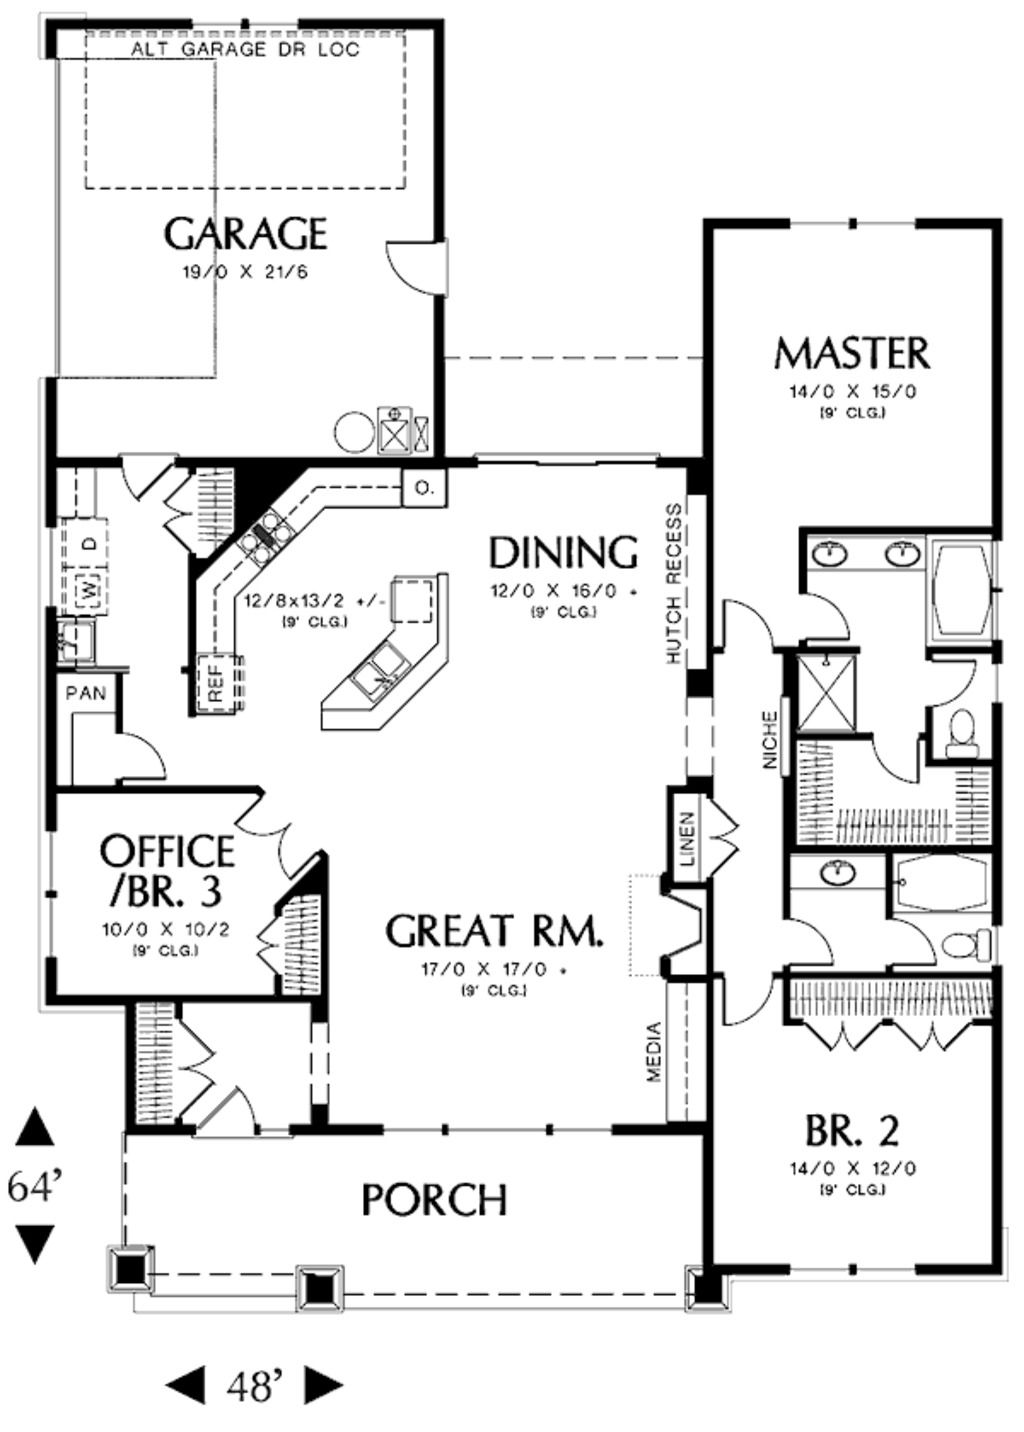 Craftsman style house plan 3 beds baths 1891 sq ft for Two bedroom hall kitchen house plans